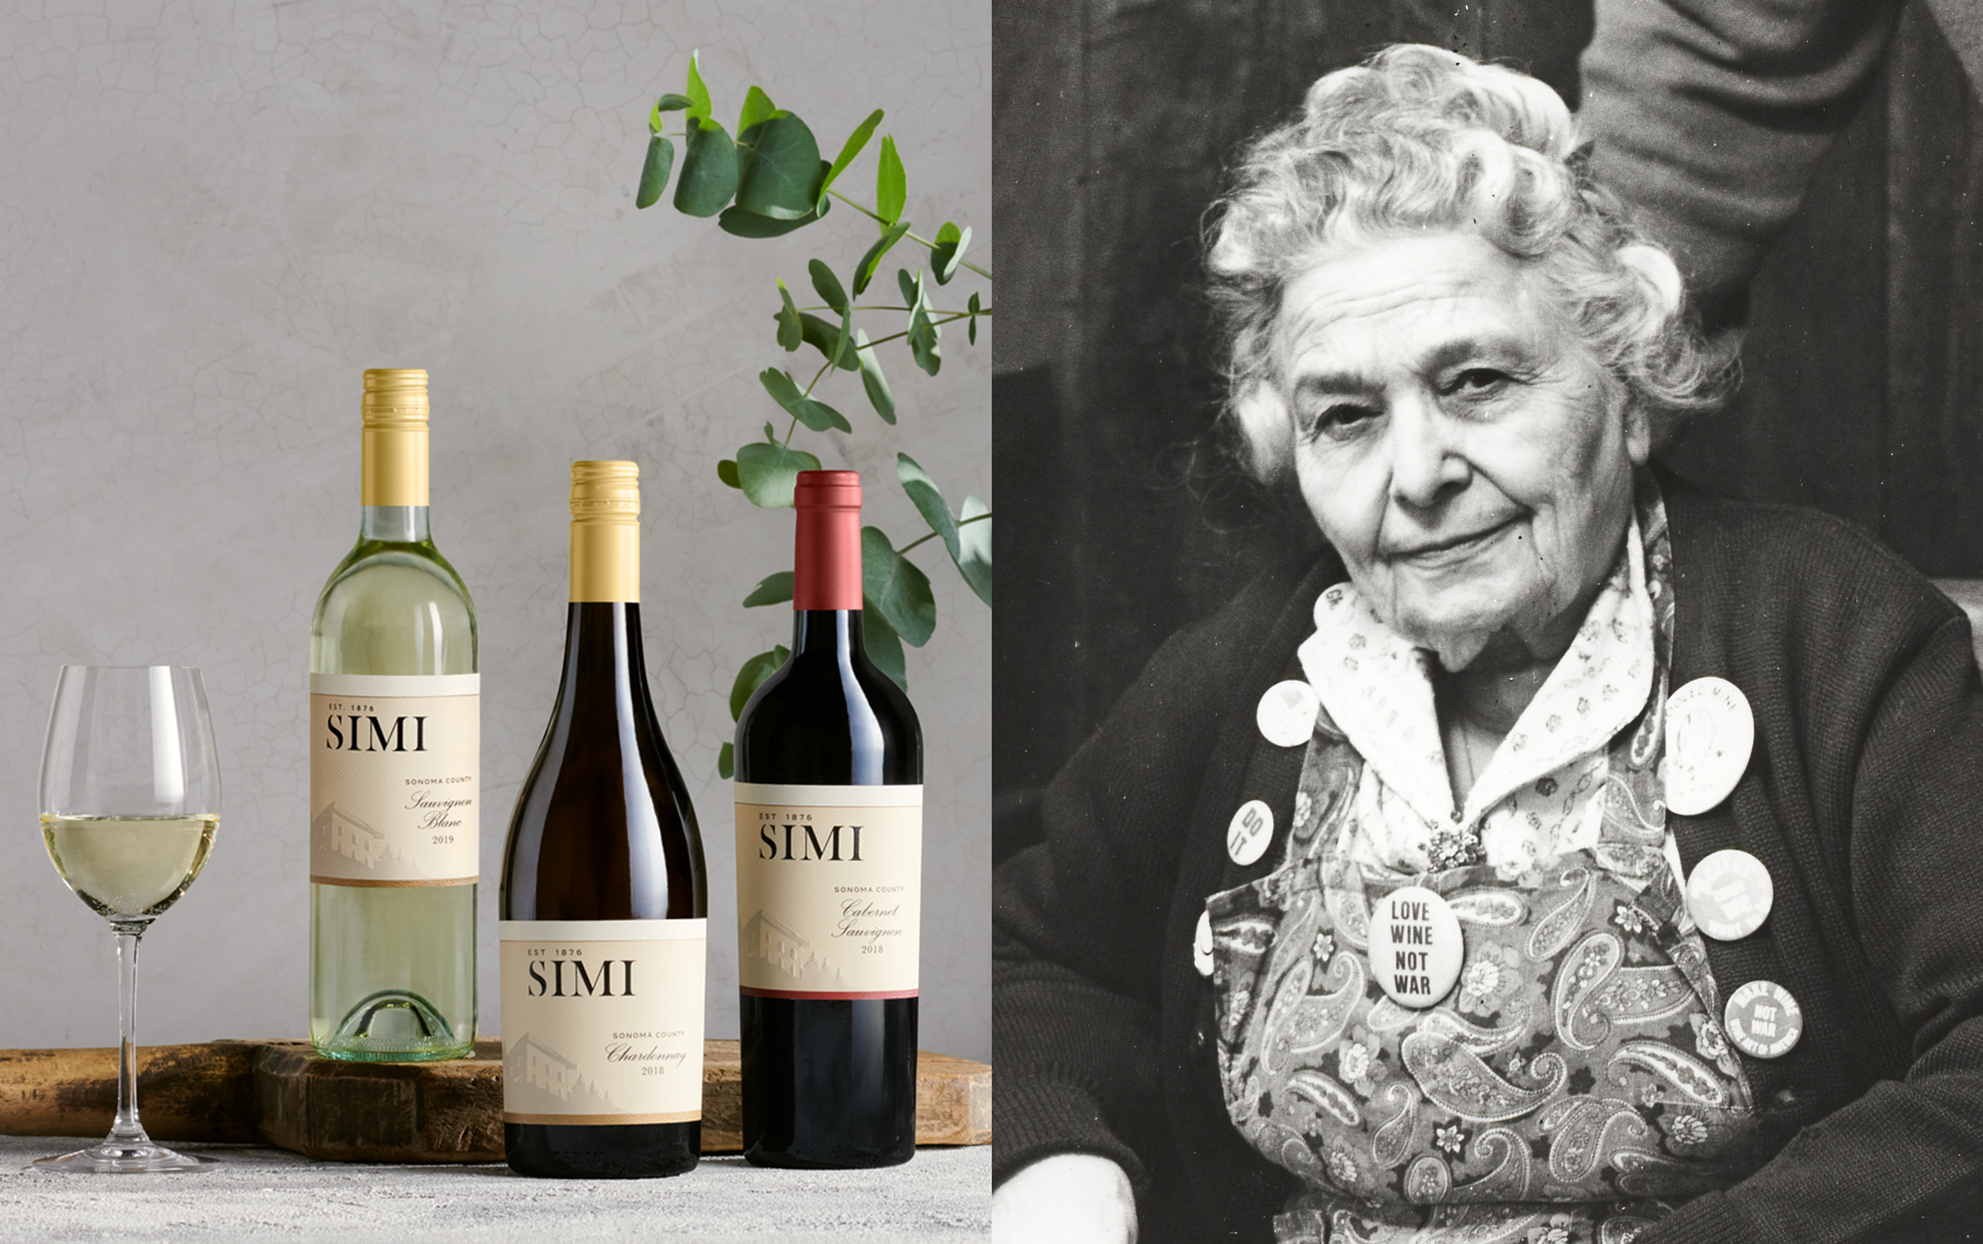 Isabell Simi and Simi wines